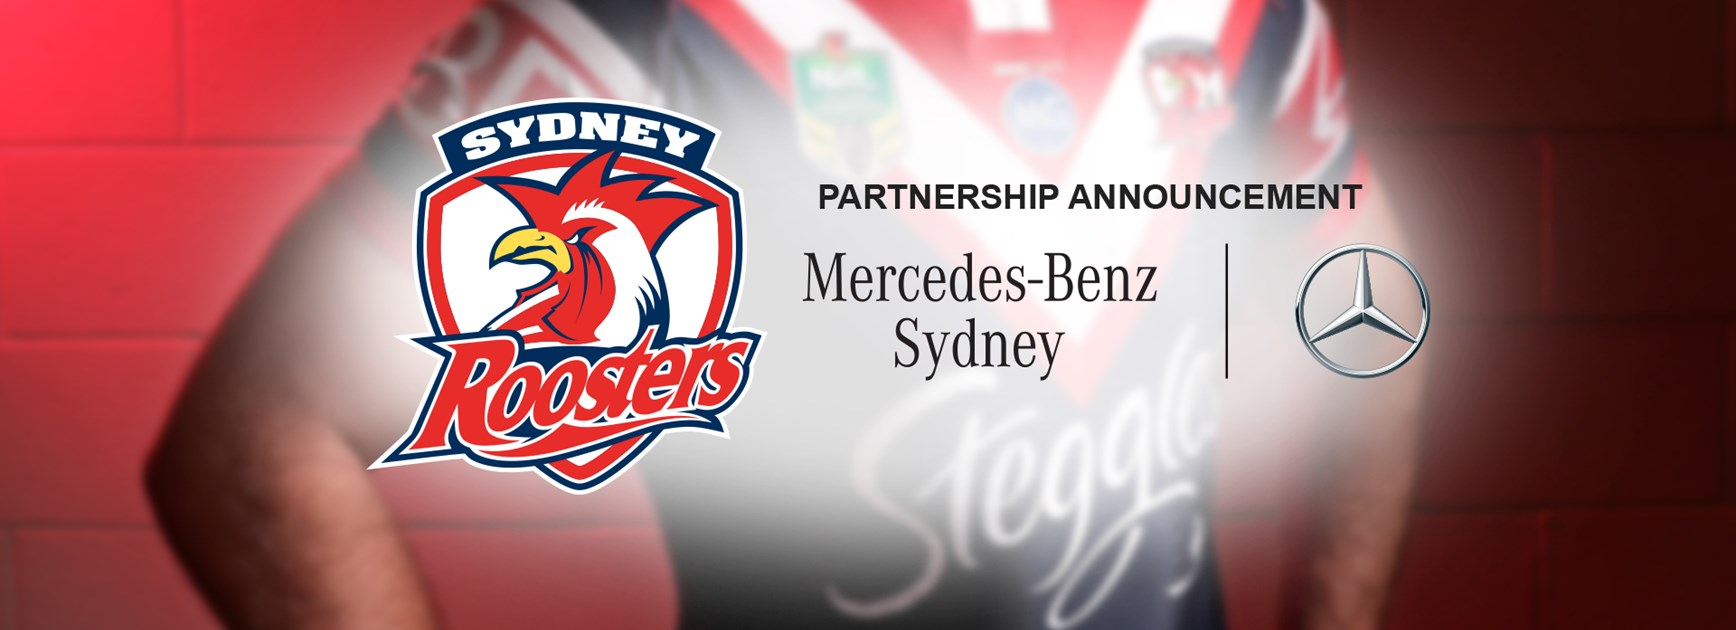 Mercedes-Benz Sydney Driving Force Behind Roosters